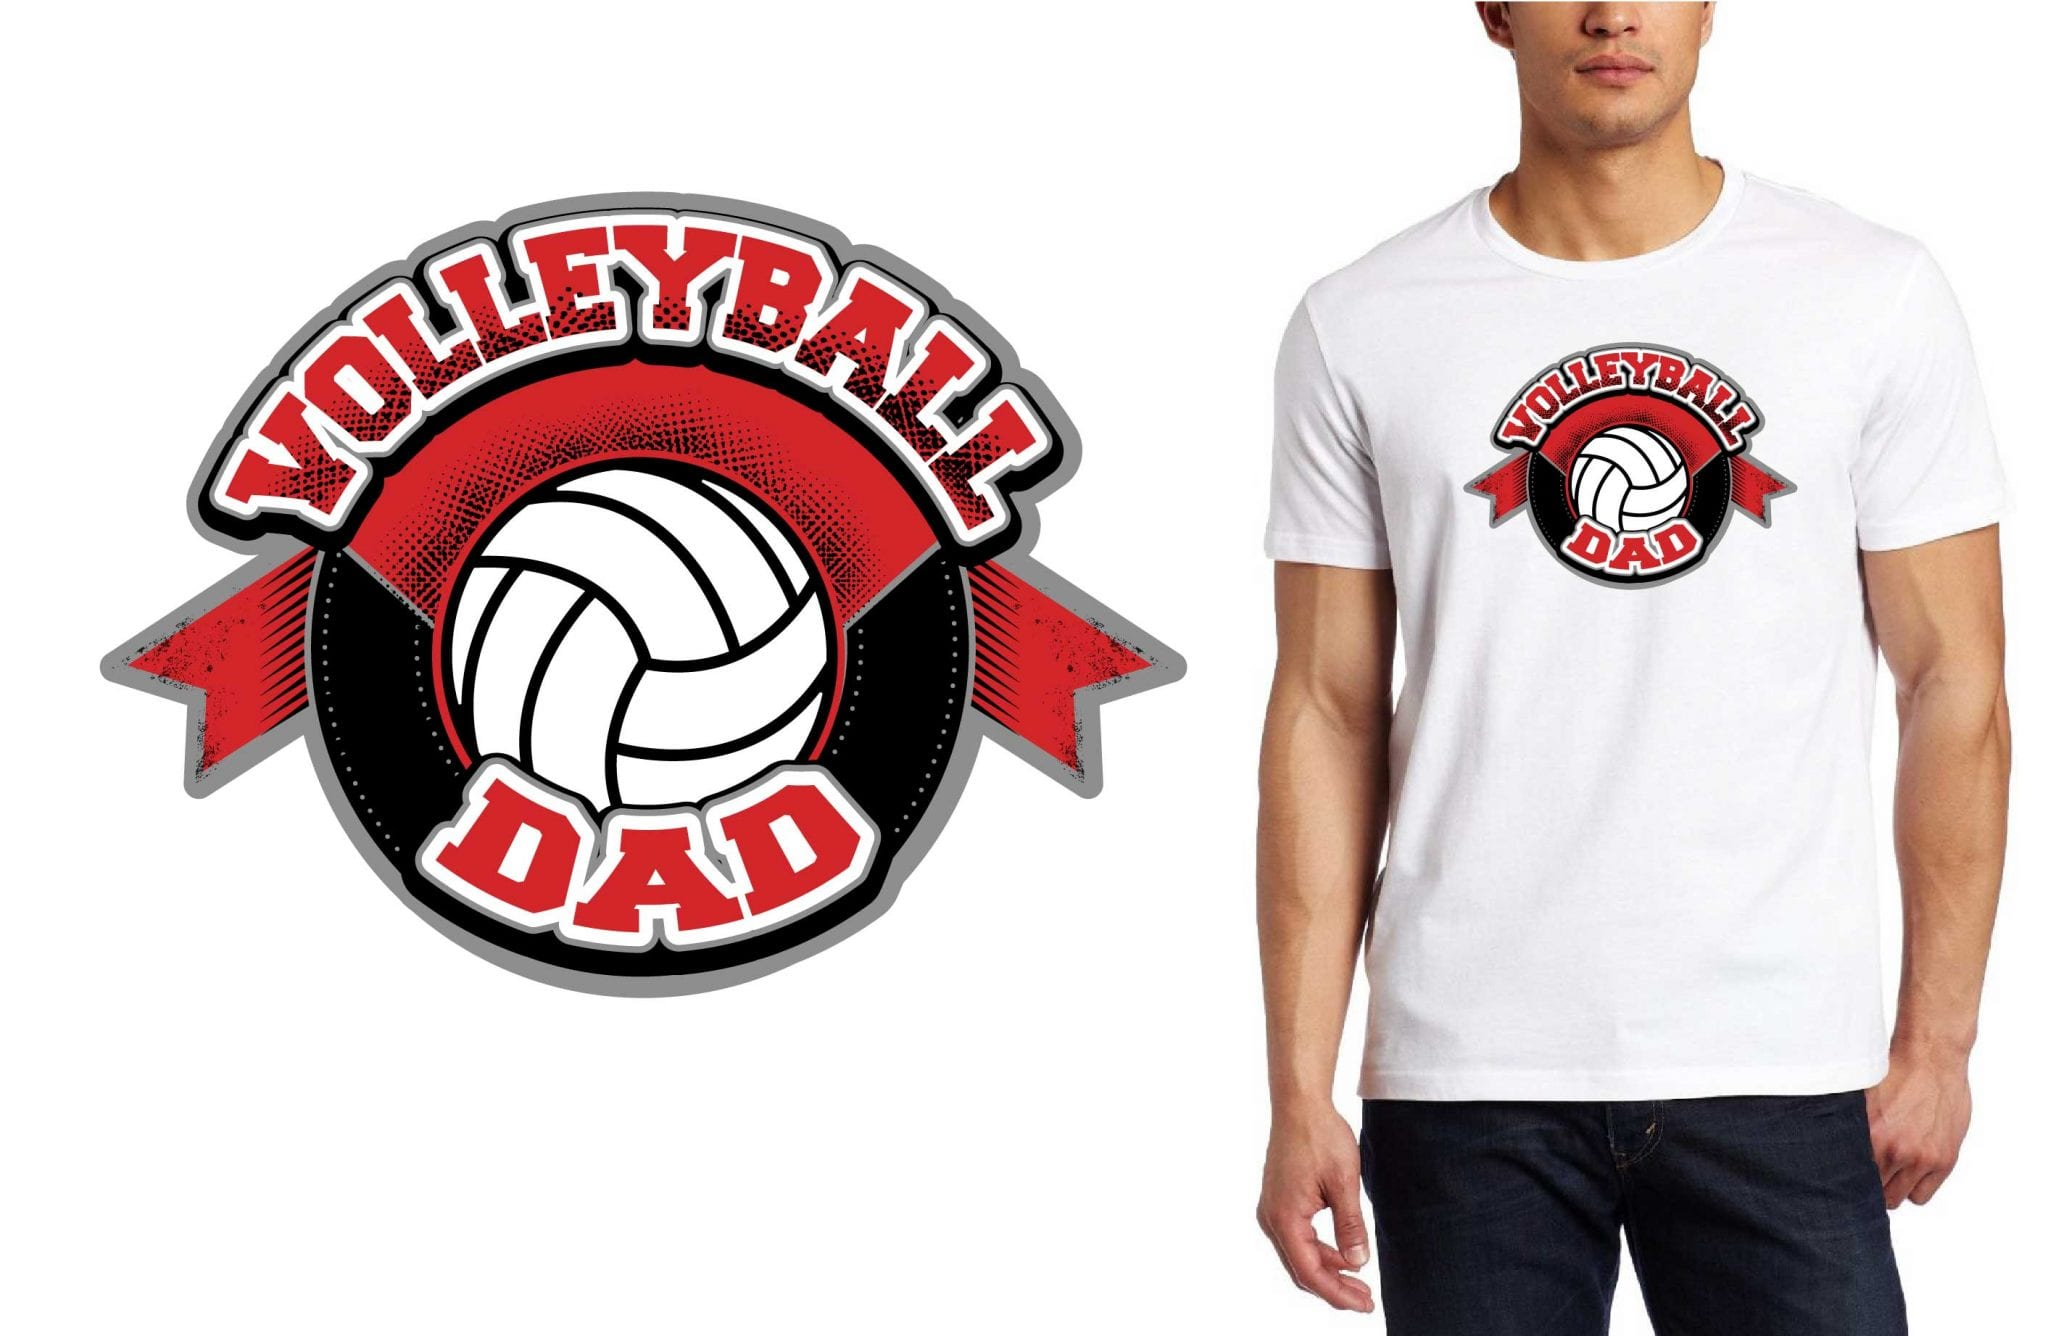 VOLLEYBALL DAD PRINT READY